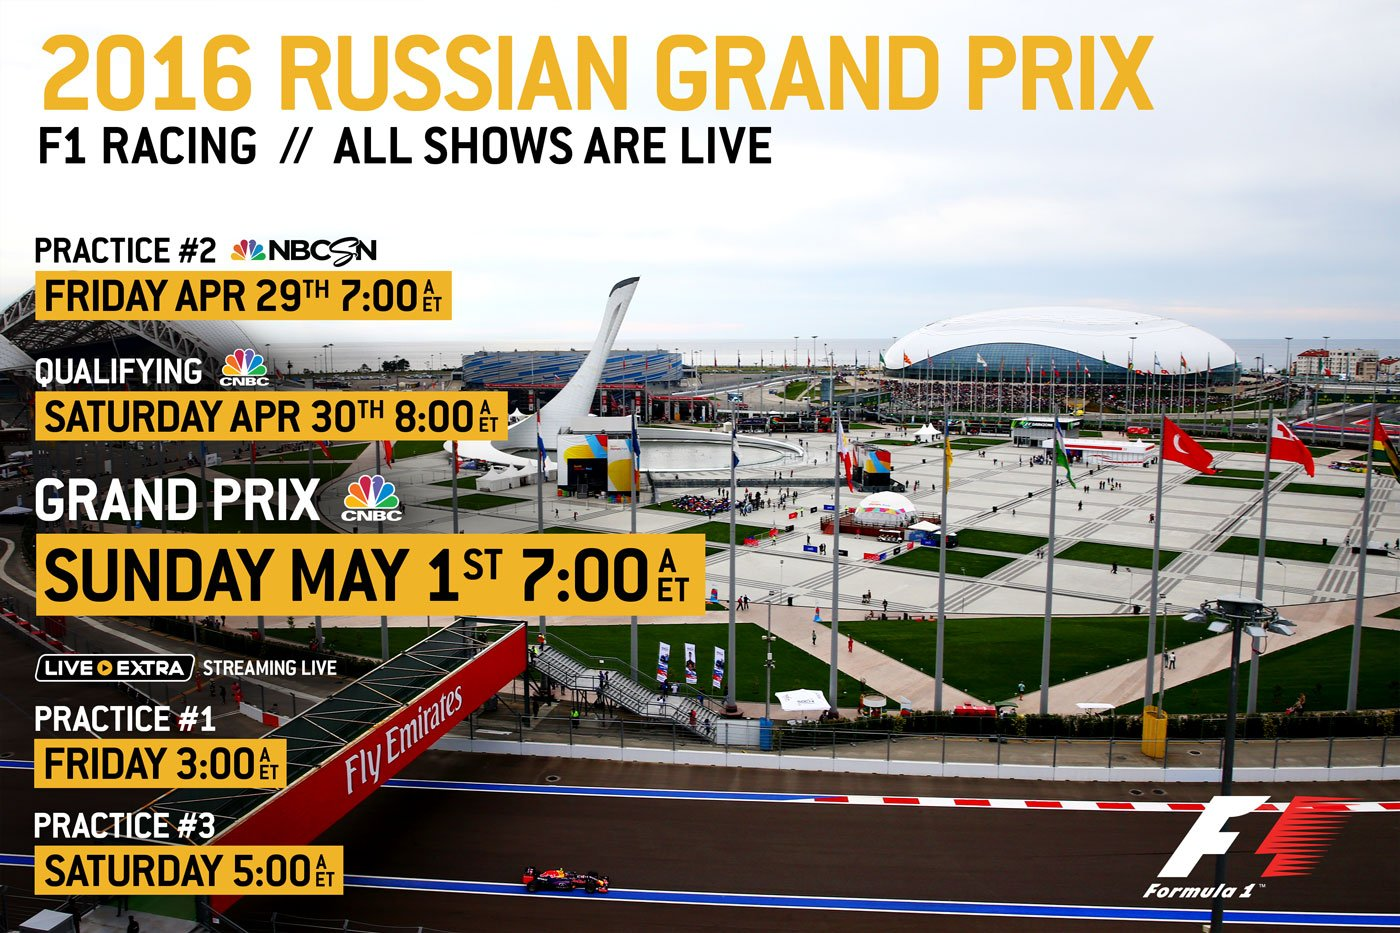 f1 on nbc sports on twitter it 39 s russiangp race week here are all of your tv streaming times. Black Bedroom Furniture Sets. Home Design Ideas